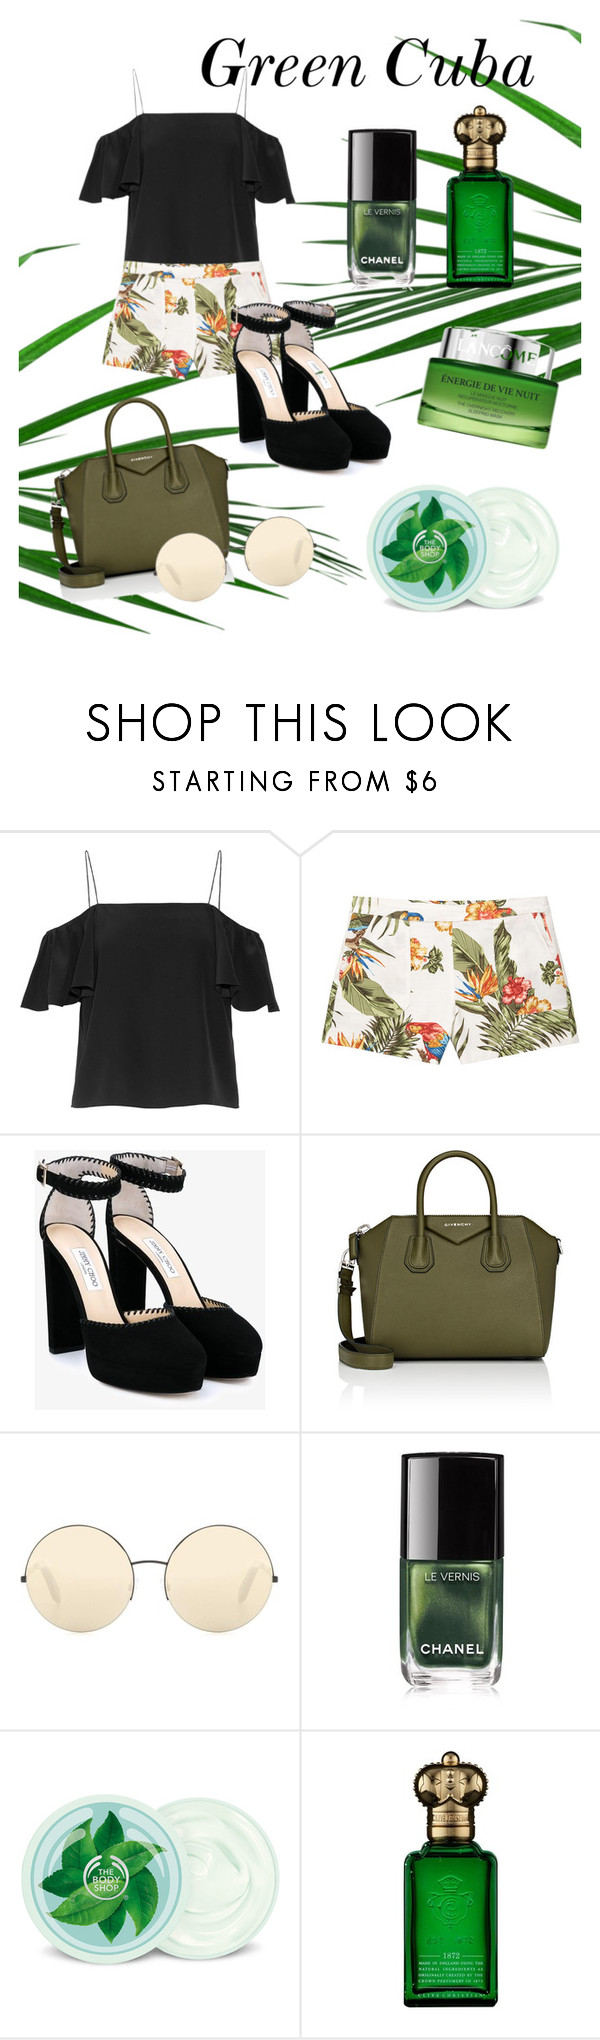 """""""Green Cuba"""" by tyaradelia ❤ liked on Polyvore featuring Fendi, MANGO, Jimmy Choo, Givenchy, Victoria Beckham, Chanel, Fuji, Clive Christian and Lancôme"""